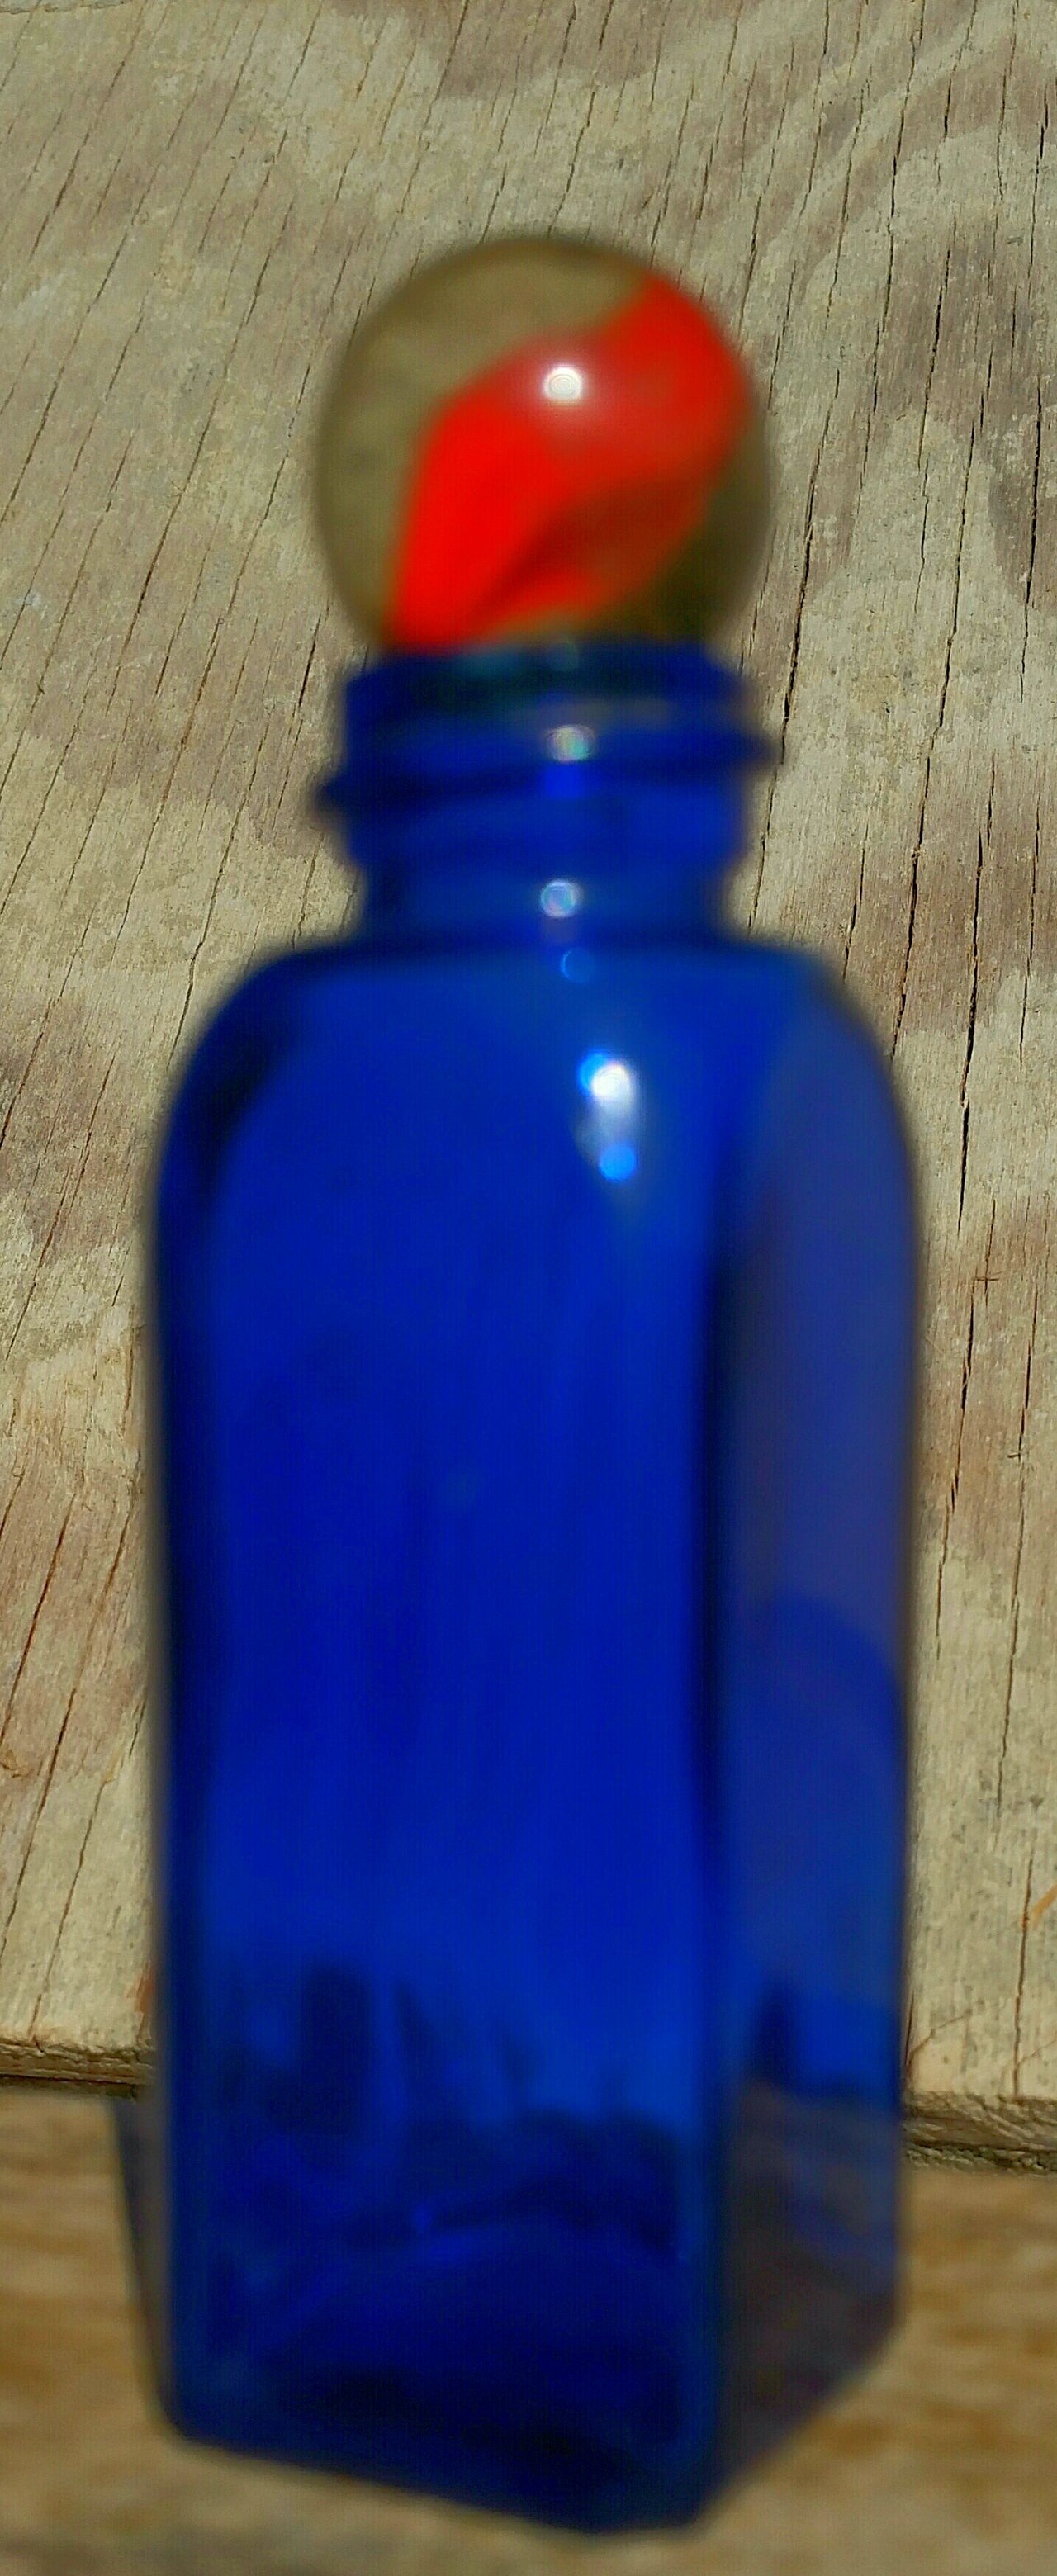 Blue Wave Blue Bottle Orange Striped Marble Toys Antique Blue Bottle Vintage Bottle Vintage Toys Old Bottle Cobolt Blue Cobolt Glass Old Colbolt Bottle Vintage Colbolt Blue Bottle Old Glass